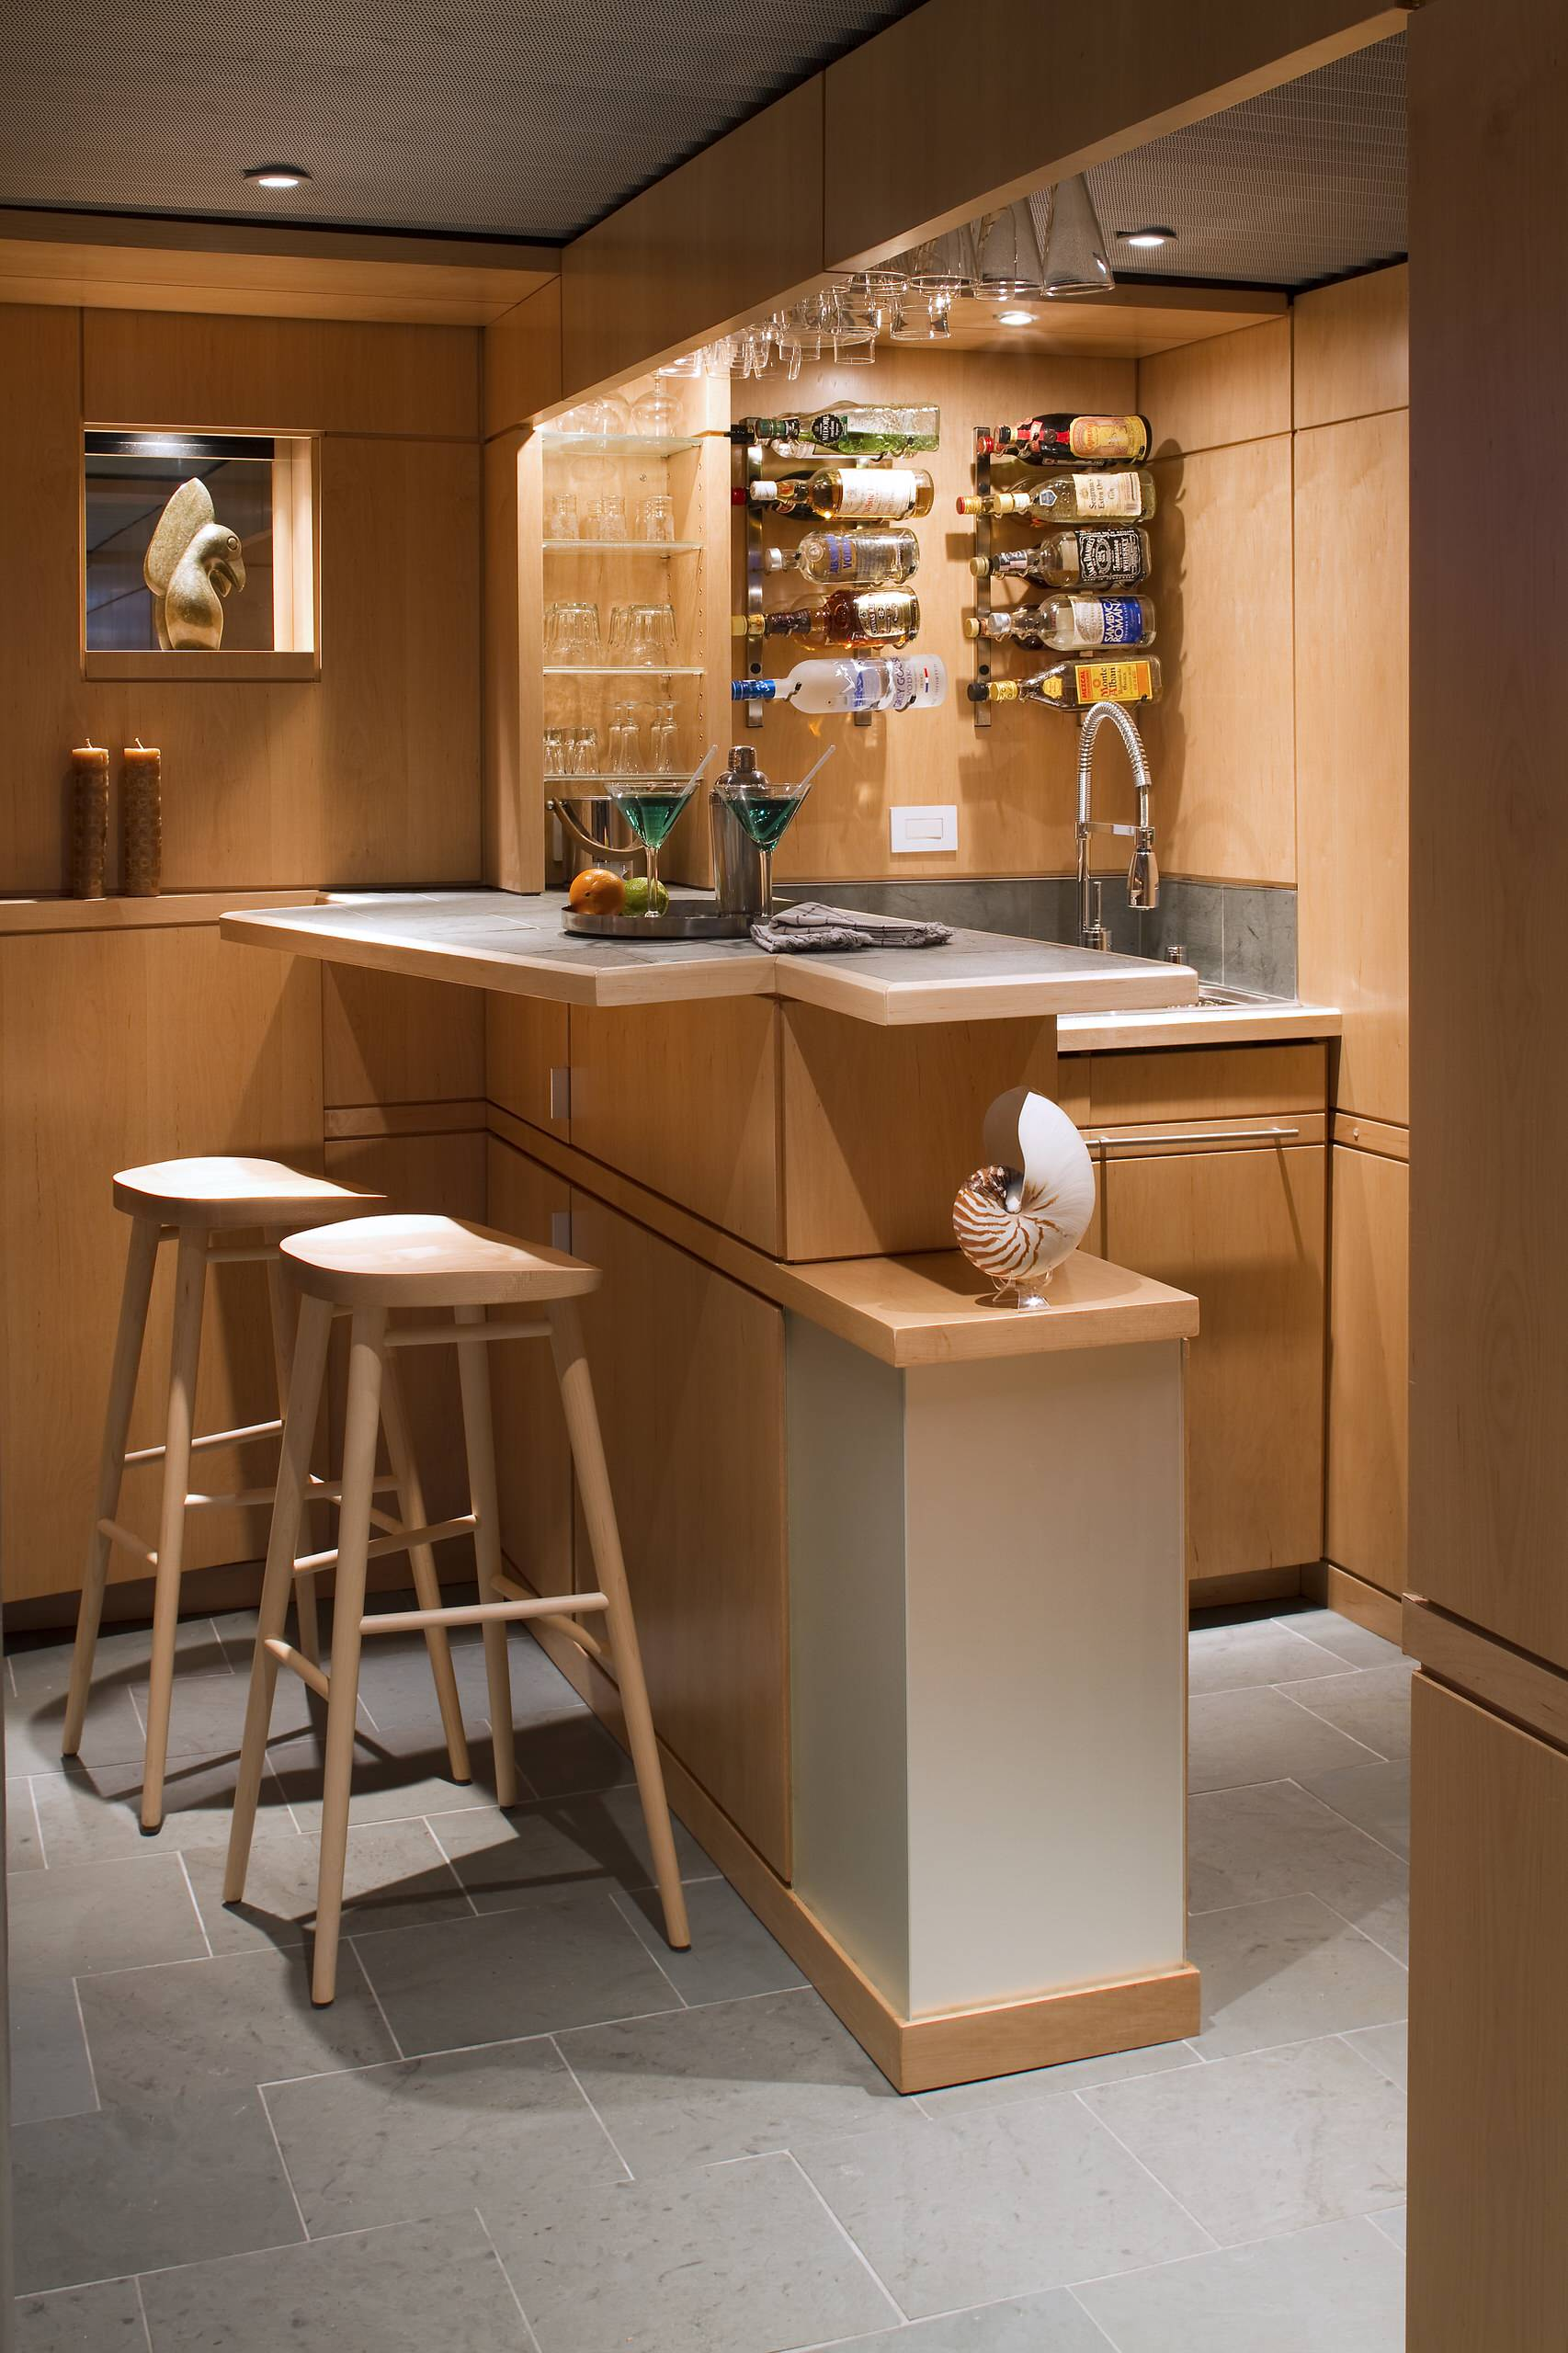 75 Beautiful Small Home Bar Pictures Ideas April 2021 Houzz